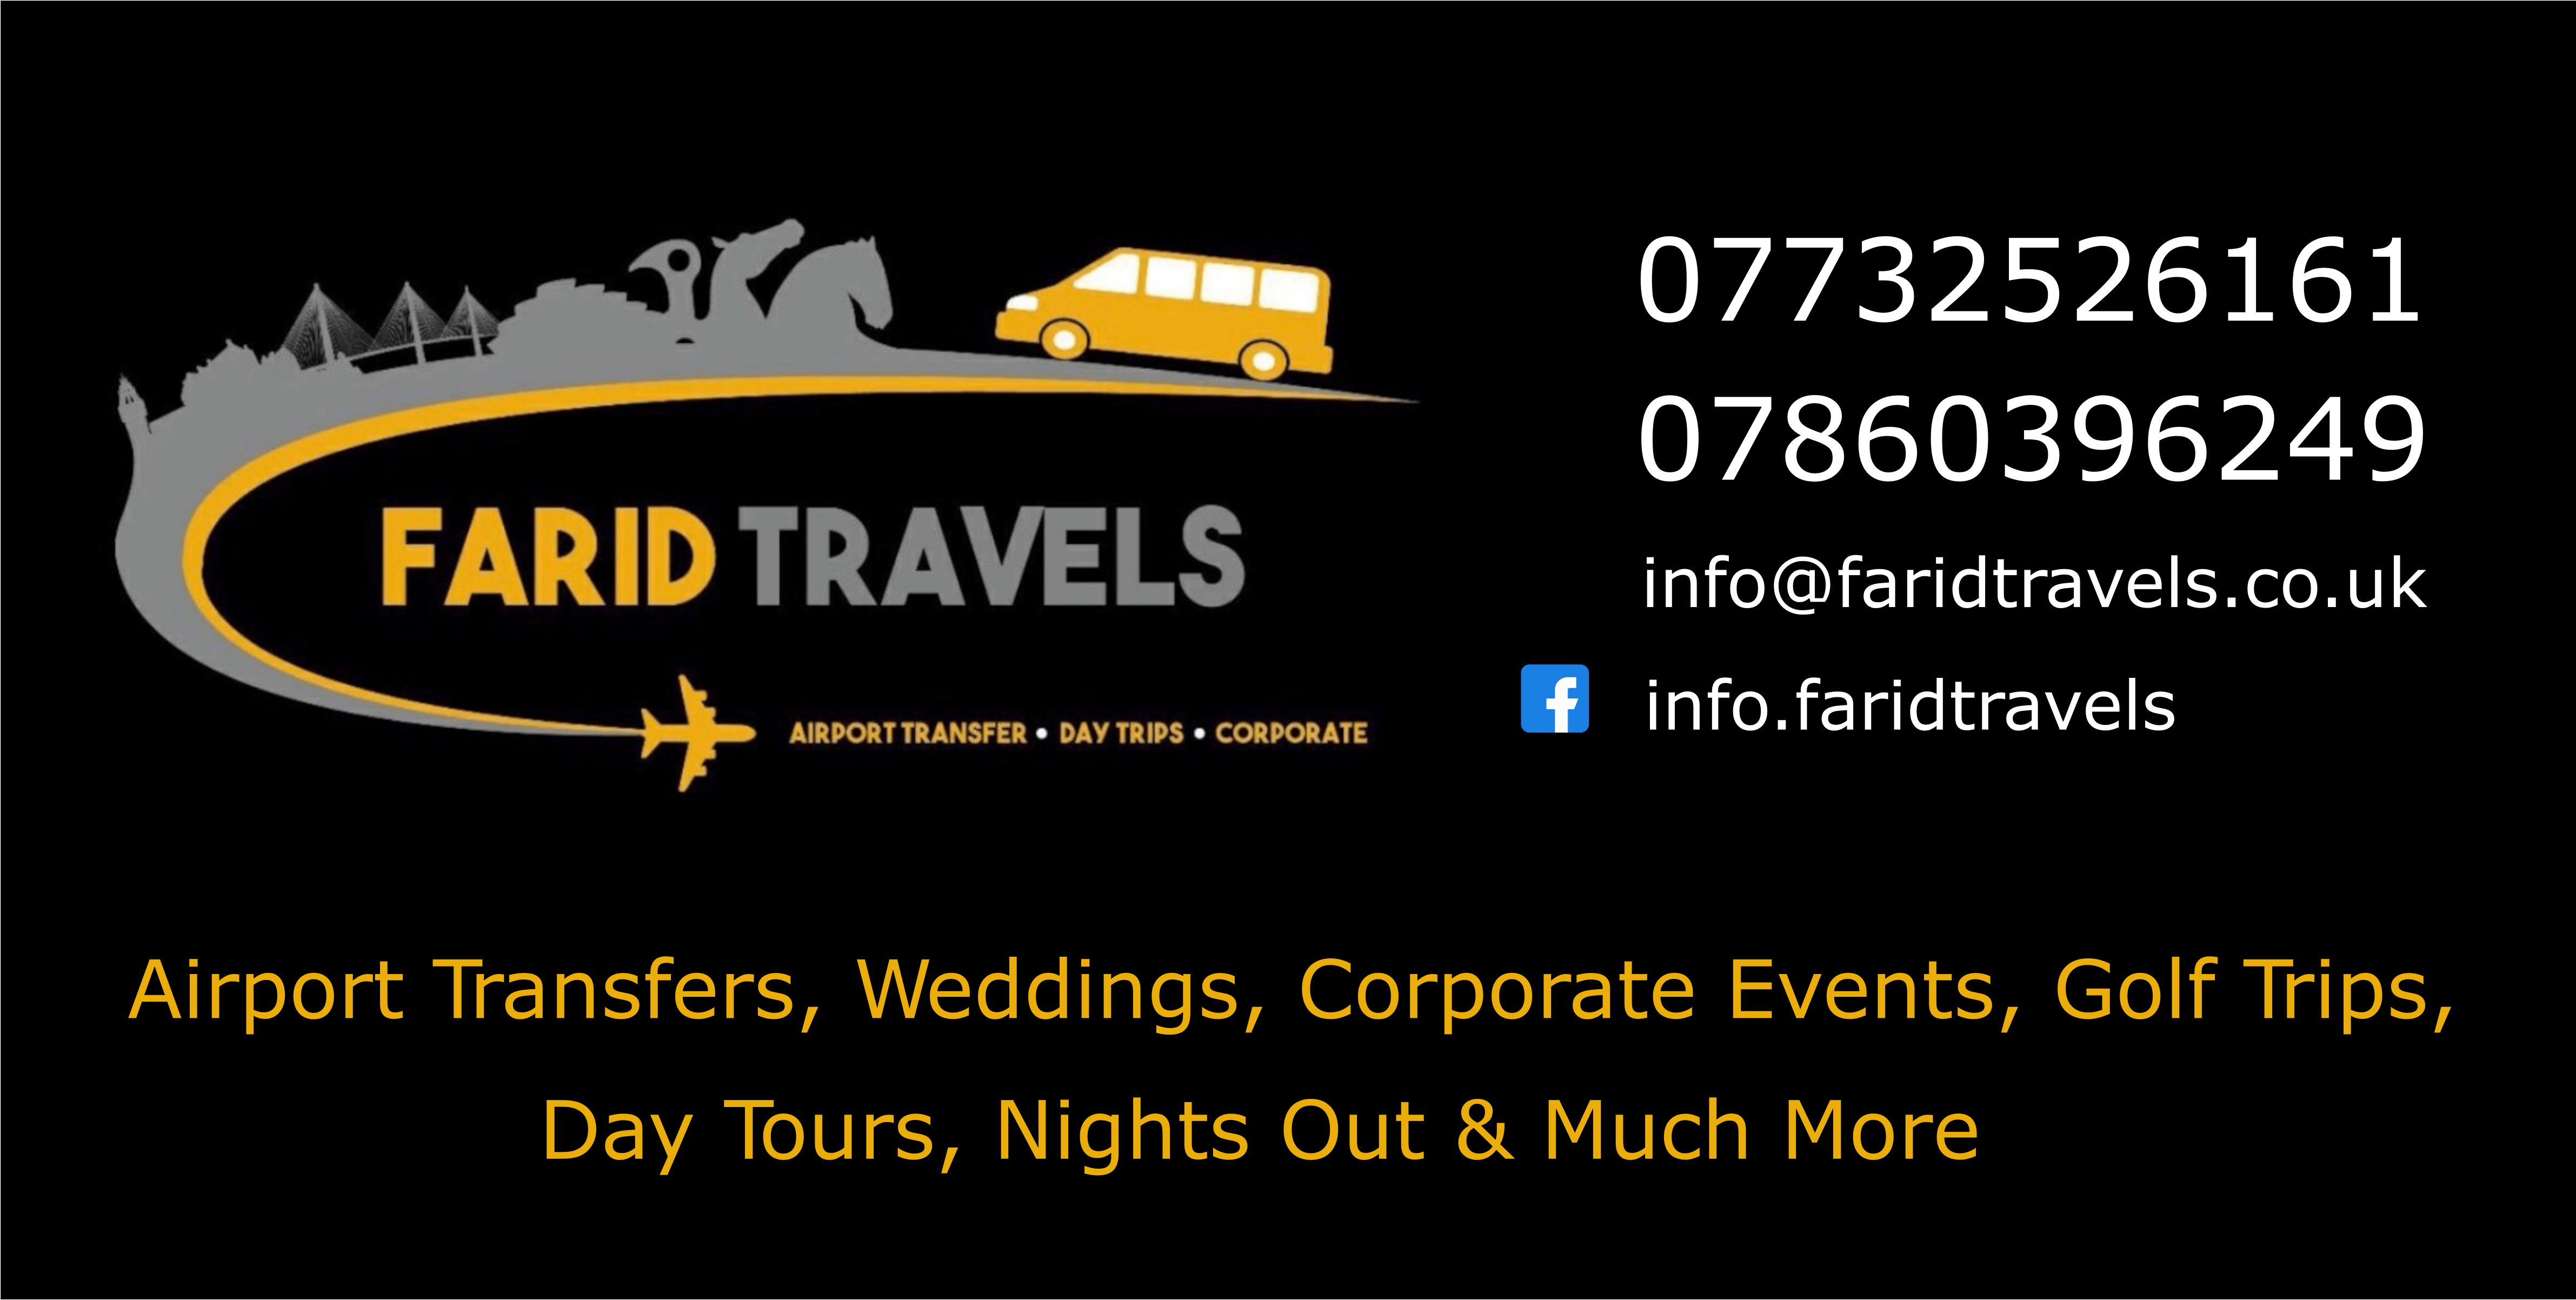 Farid Travels Board